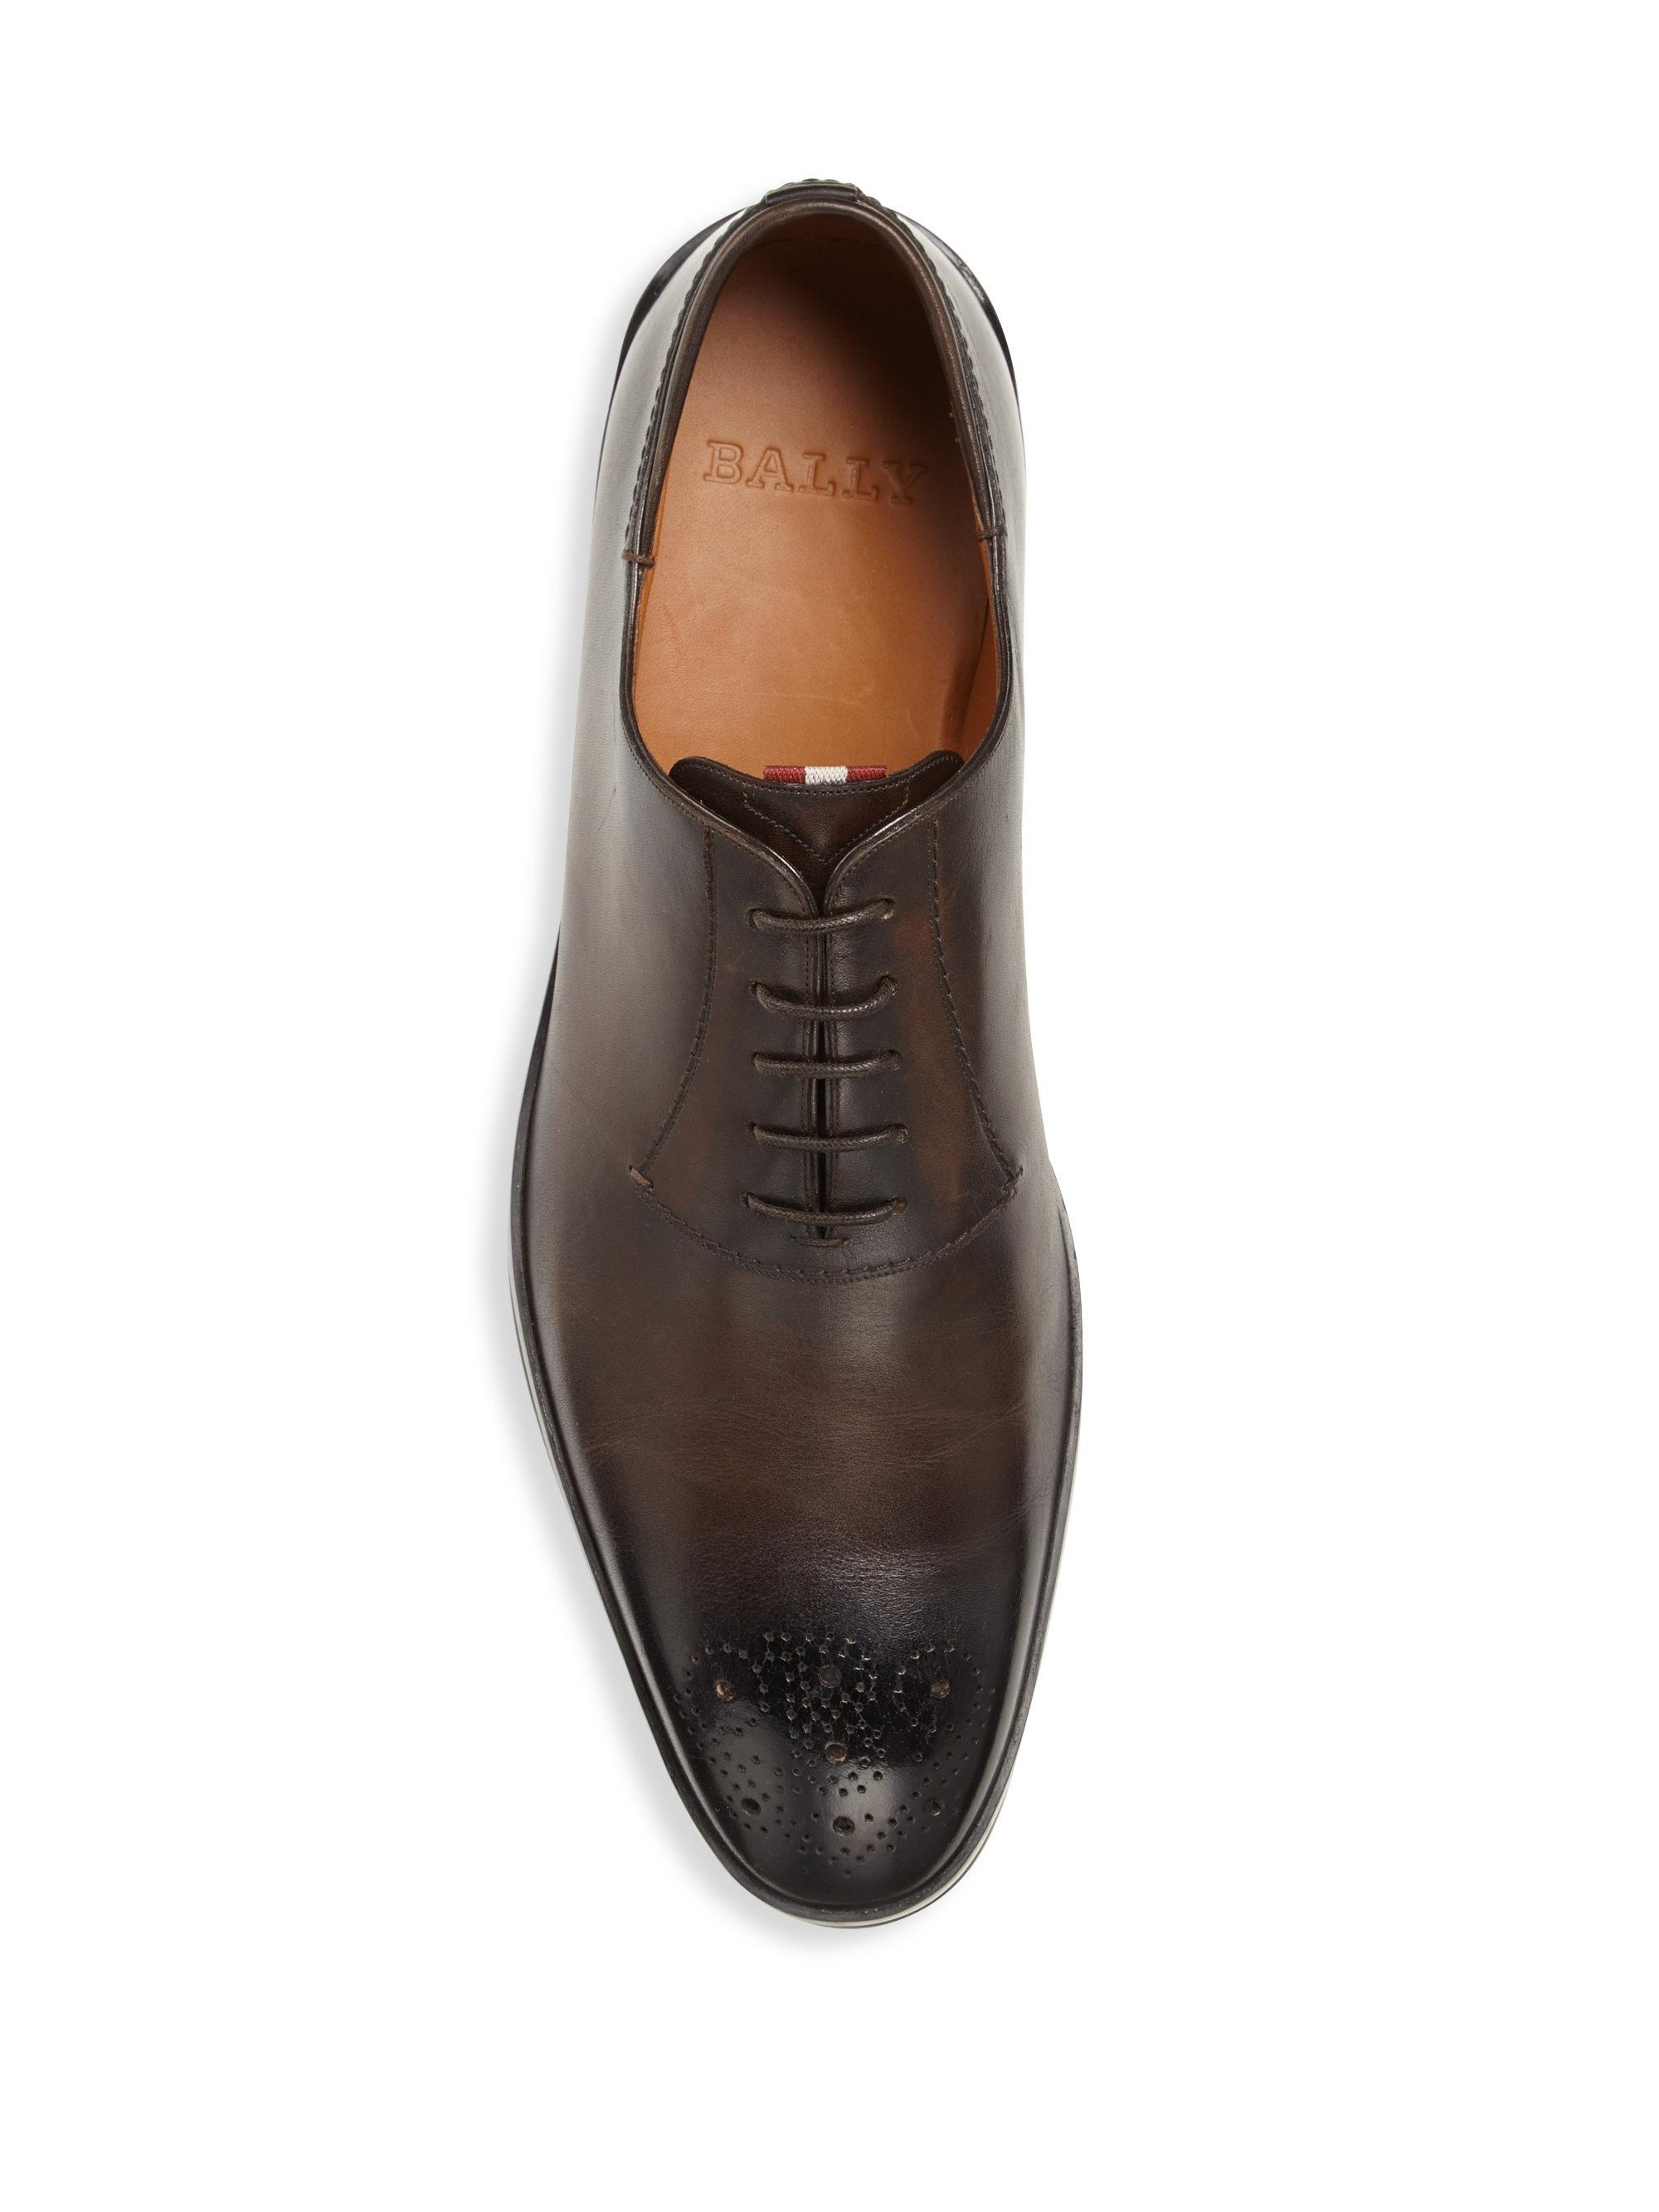 761e054a1ef Bally Reddison Hybrid Leather Dress Shoes in Brown for Men - Lyst